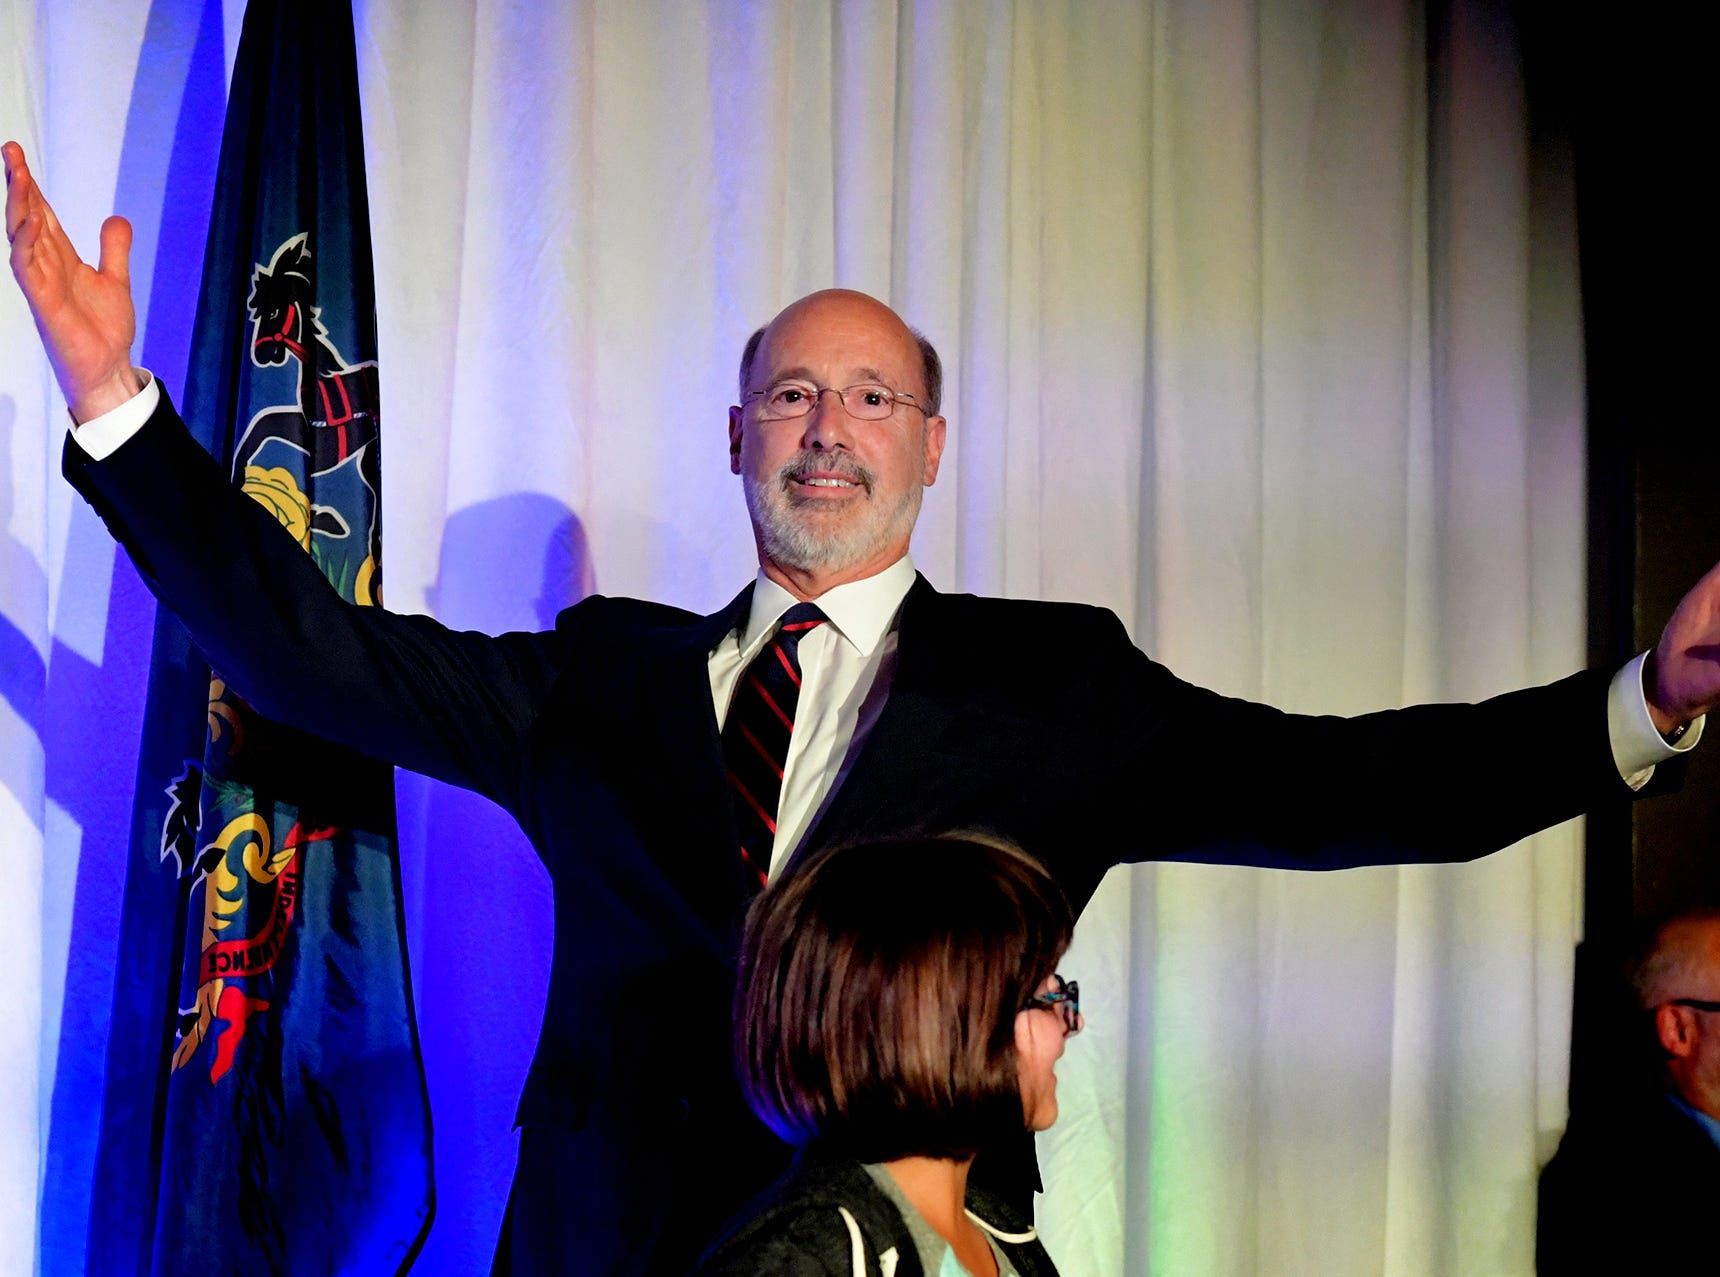 Gov. Tom Wolf takes the stage to give a victory speech during the campaign's Election Night Party at the Bond in York City Tuesday, Nov. 6, 2018. Wolf defeated challenger Scott Wagner to win a second term. Bill Kalina photo